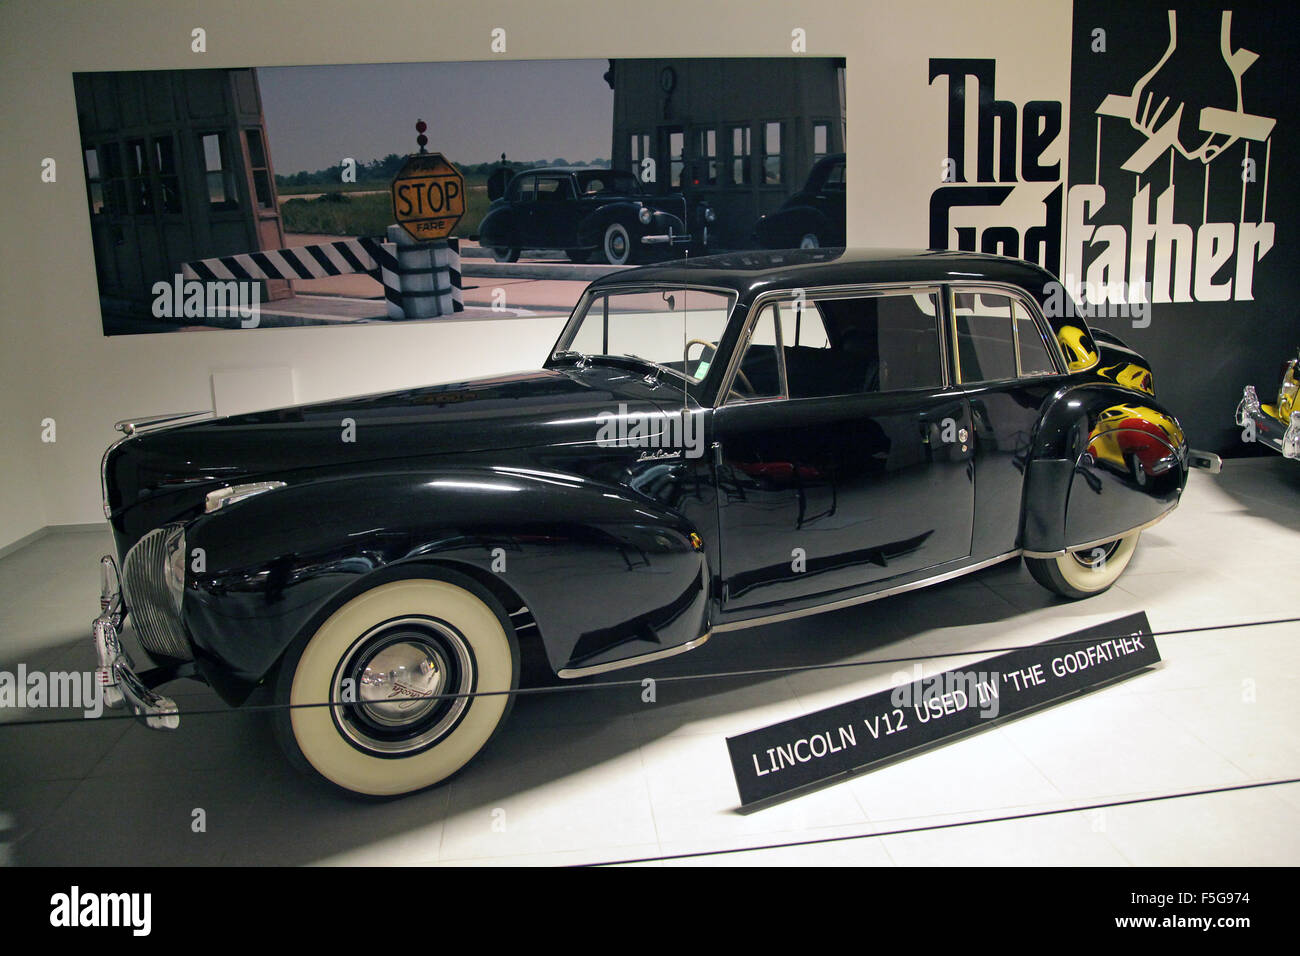 Lincoln Continental Stock Photos Images 1941 Town Car Vintage Veteran V12 Coup 48 Litre 12 Cylinder 120 Hp Used In